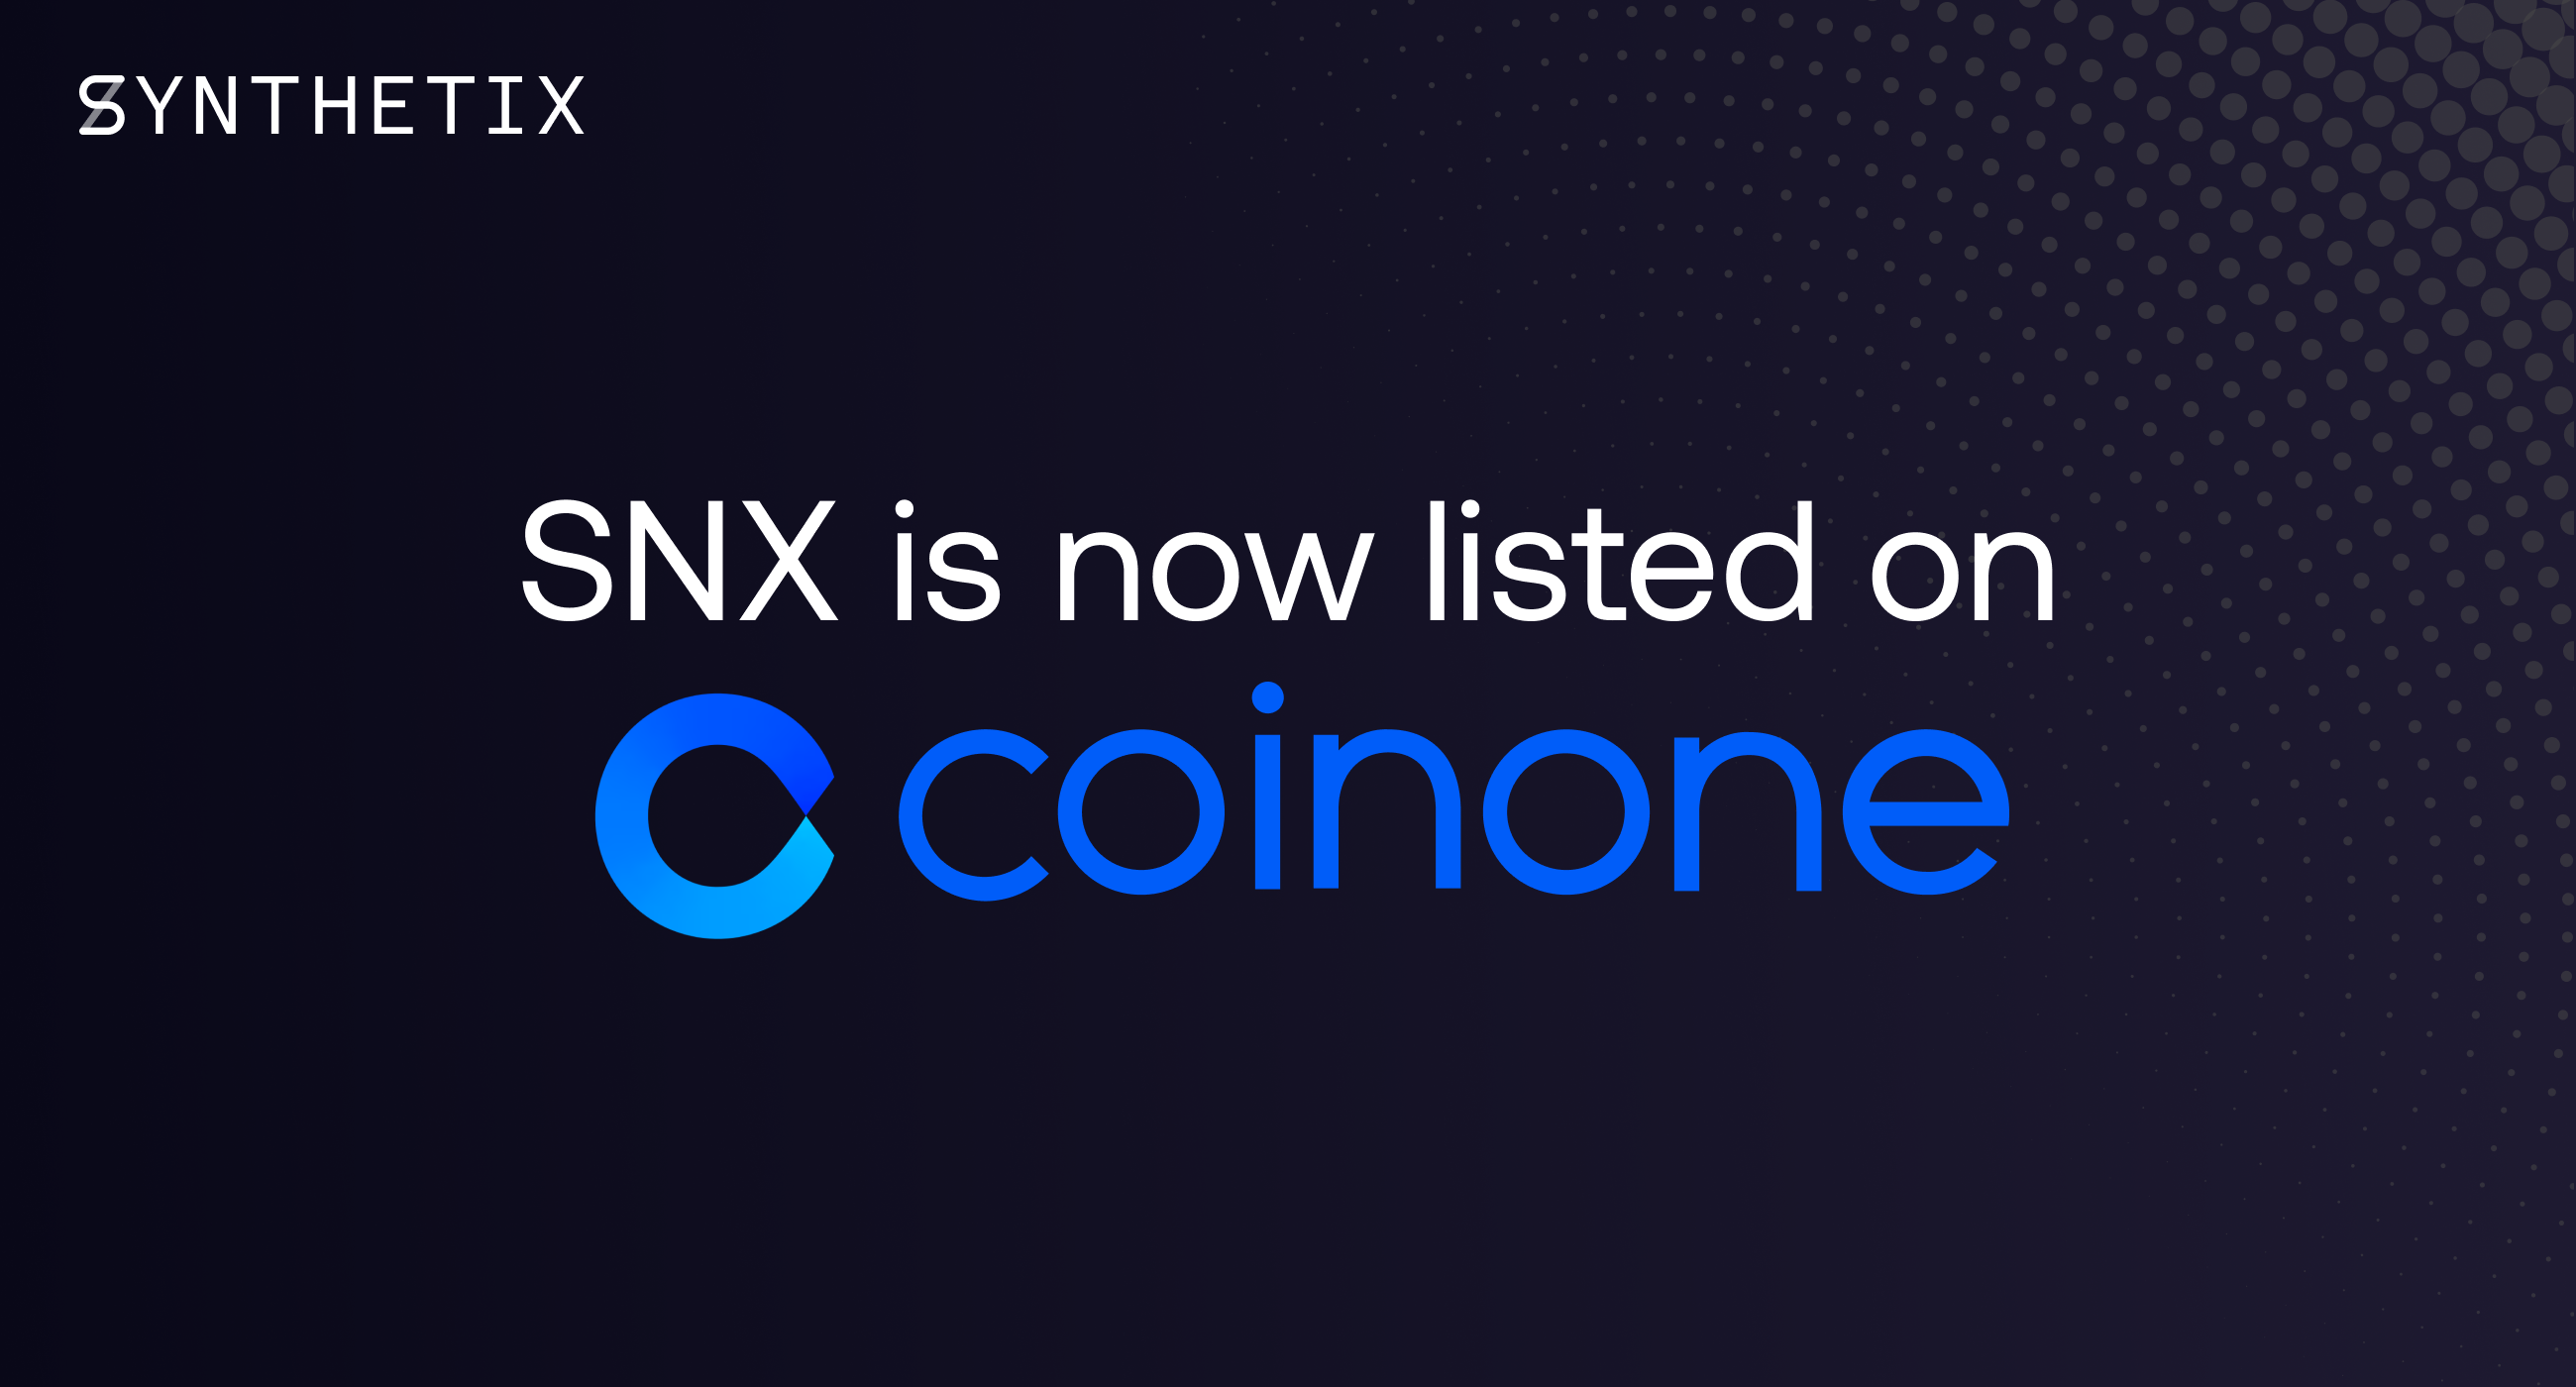 SNX is now listed on Coinone!